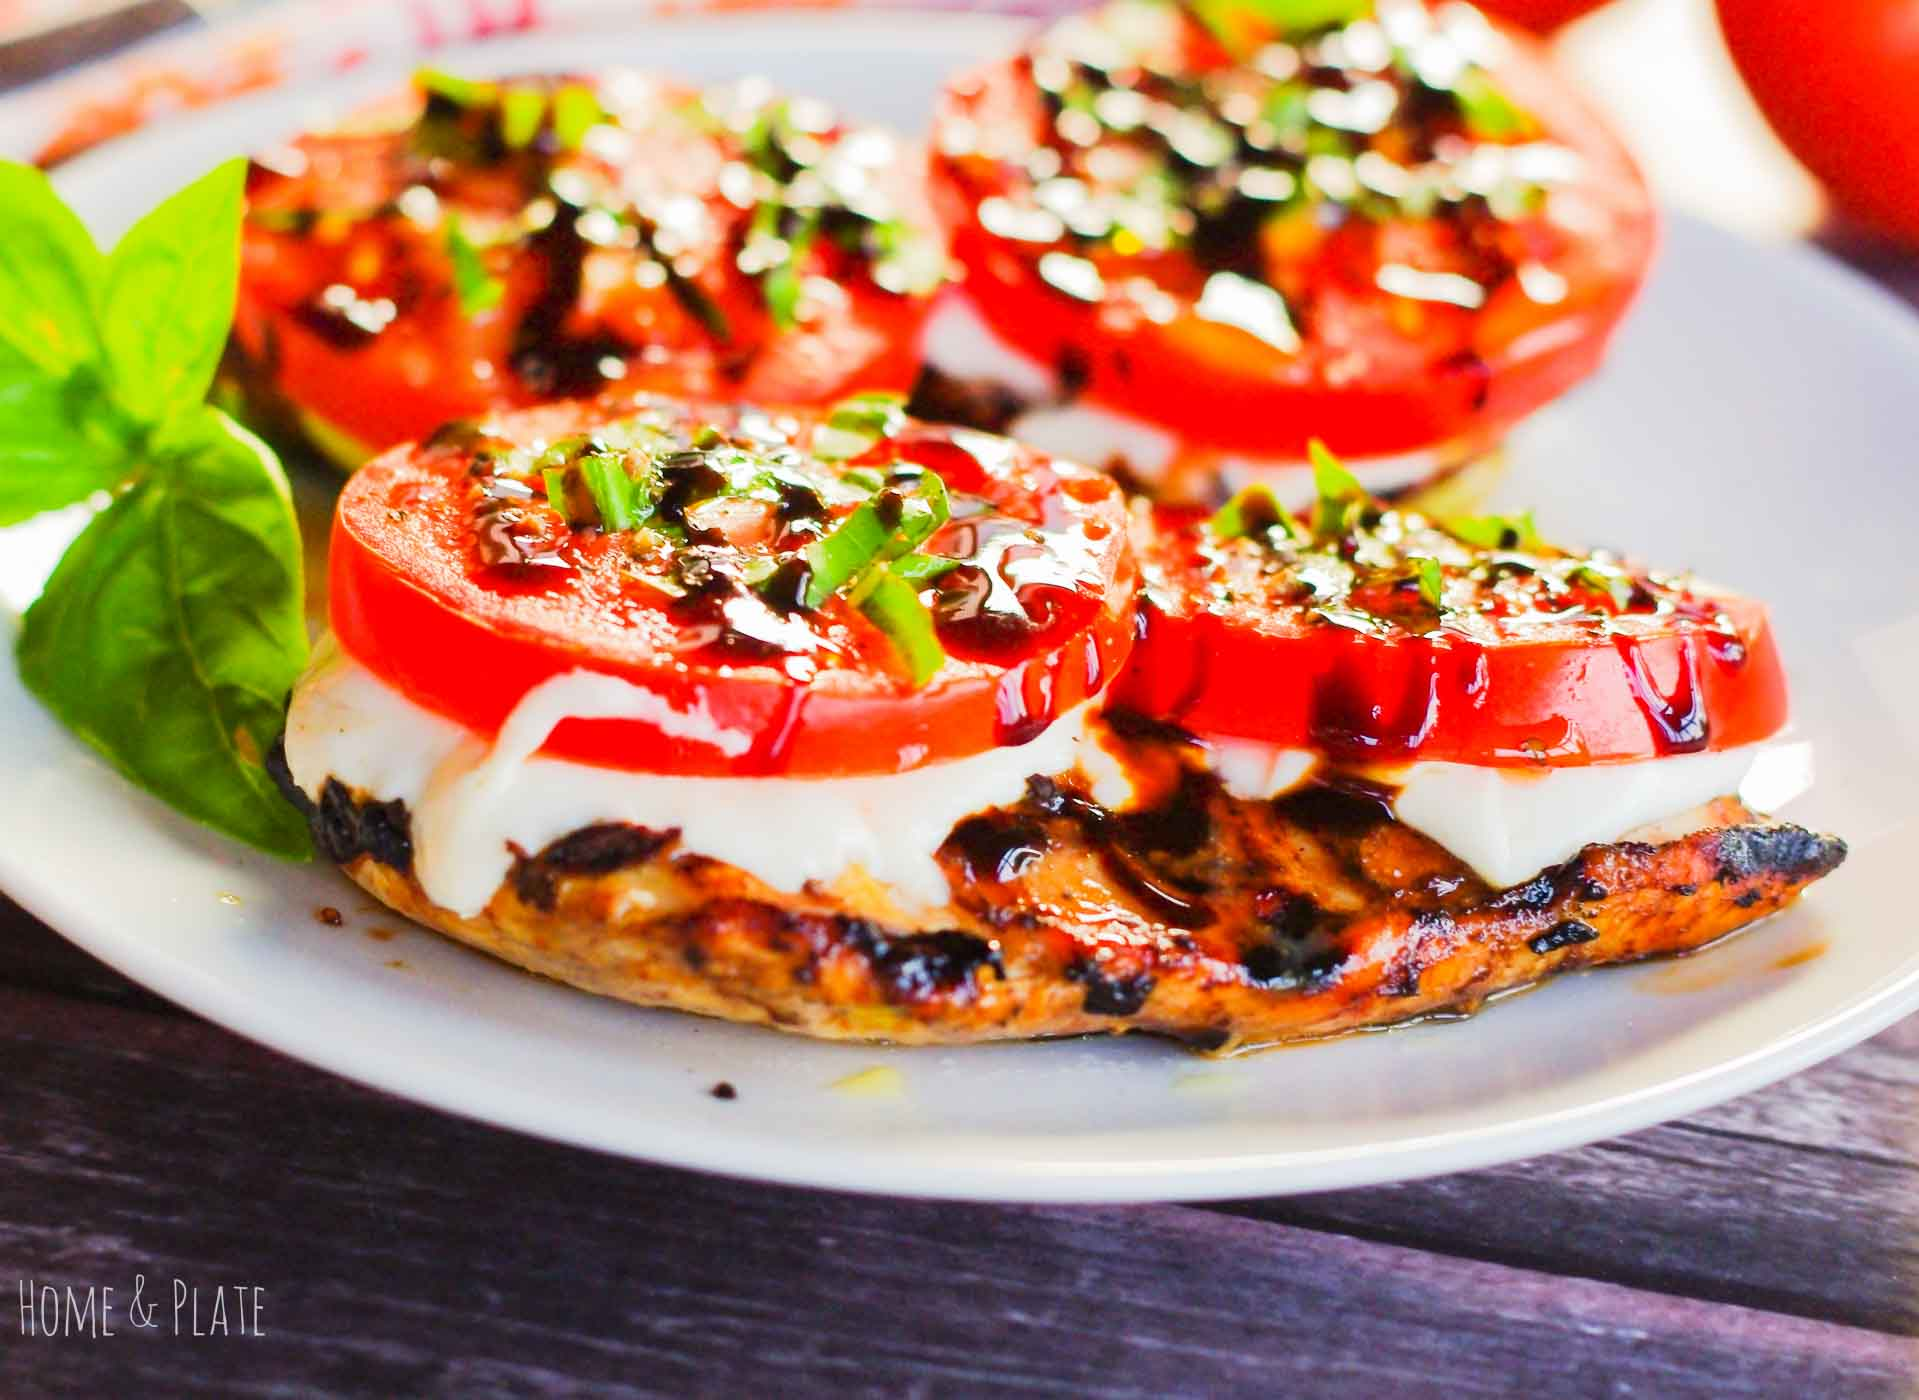 Balsamic Grilled Caprese Chicken | www.homeandplate.com | Fresh tomatoes, basil and mozzarella top these balsamic vinaigrette marinated chicken breasts. This delicious grilled chicken recipe is on the table in under 30 minutes.